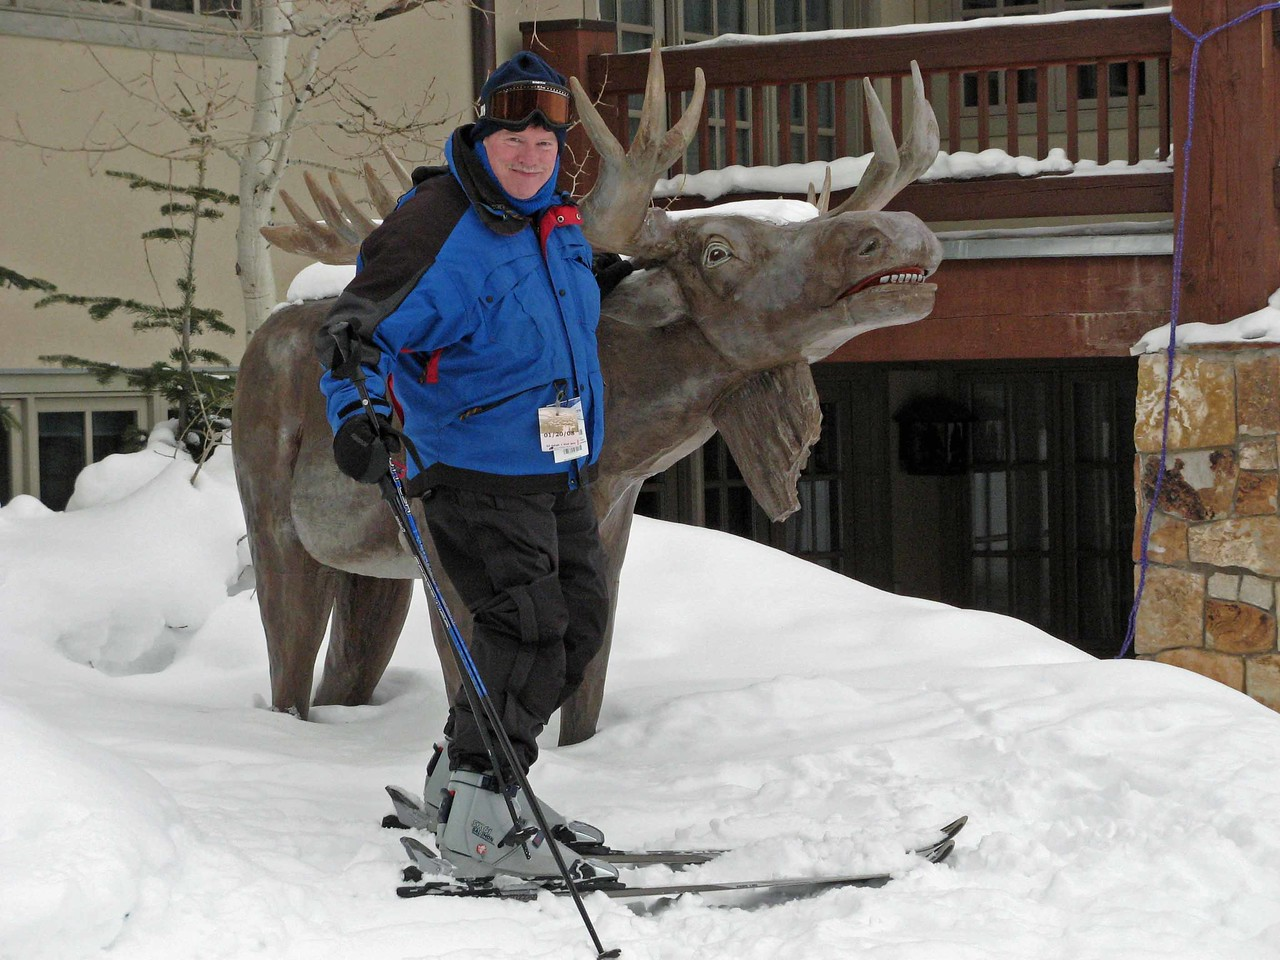 20 Bruce meets a moose at Deer Valley